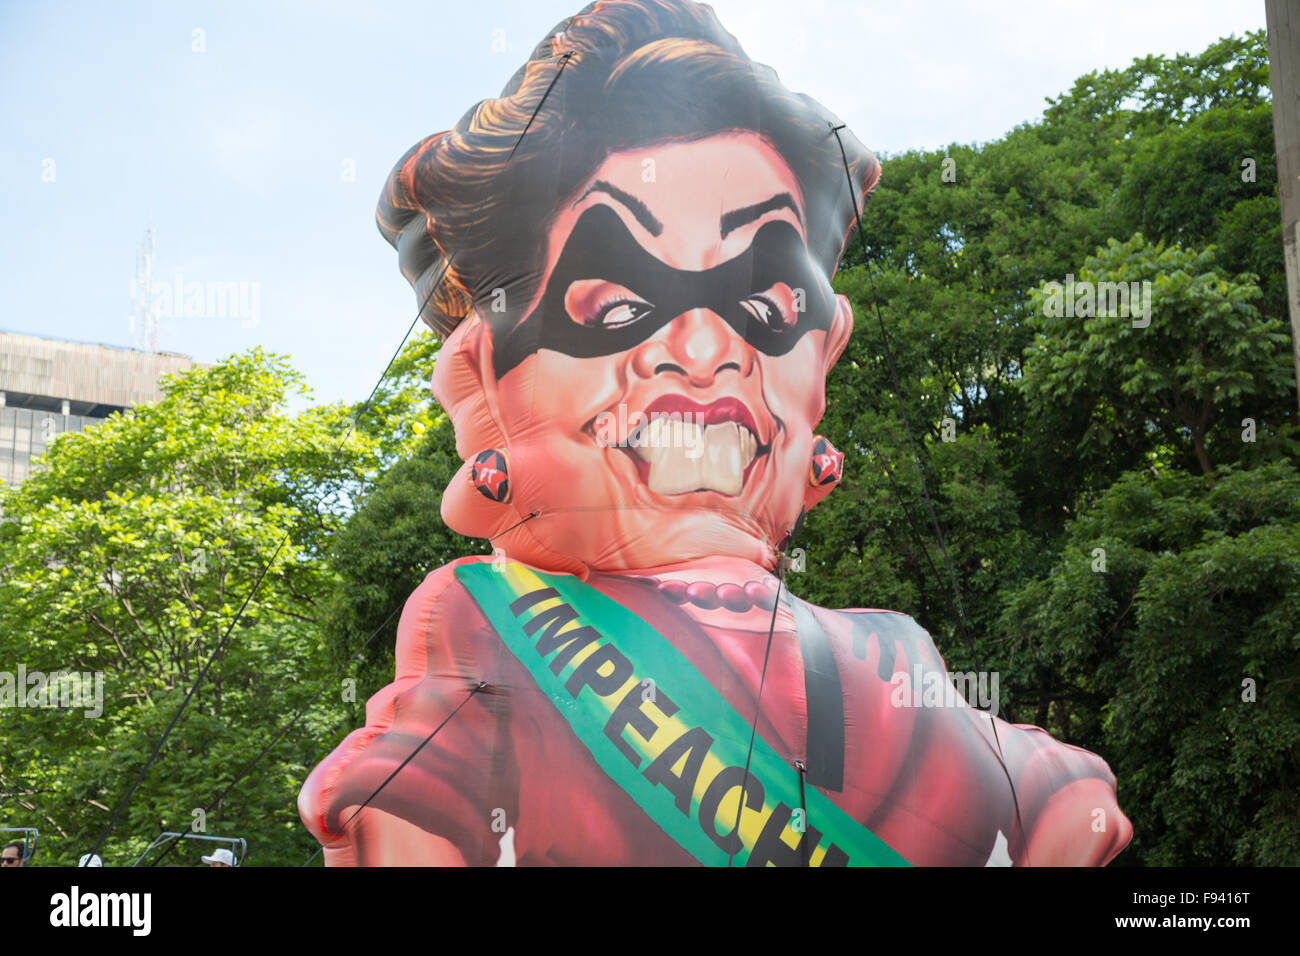 Sao Paulo, Brazil. 13th December, 2015. Inflatable in the likeness of Brazil's President Dilma Rousseff is seen - Stock Image